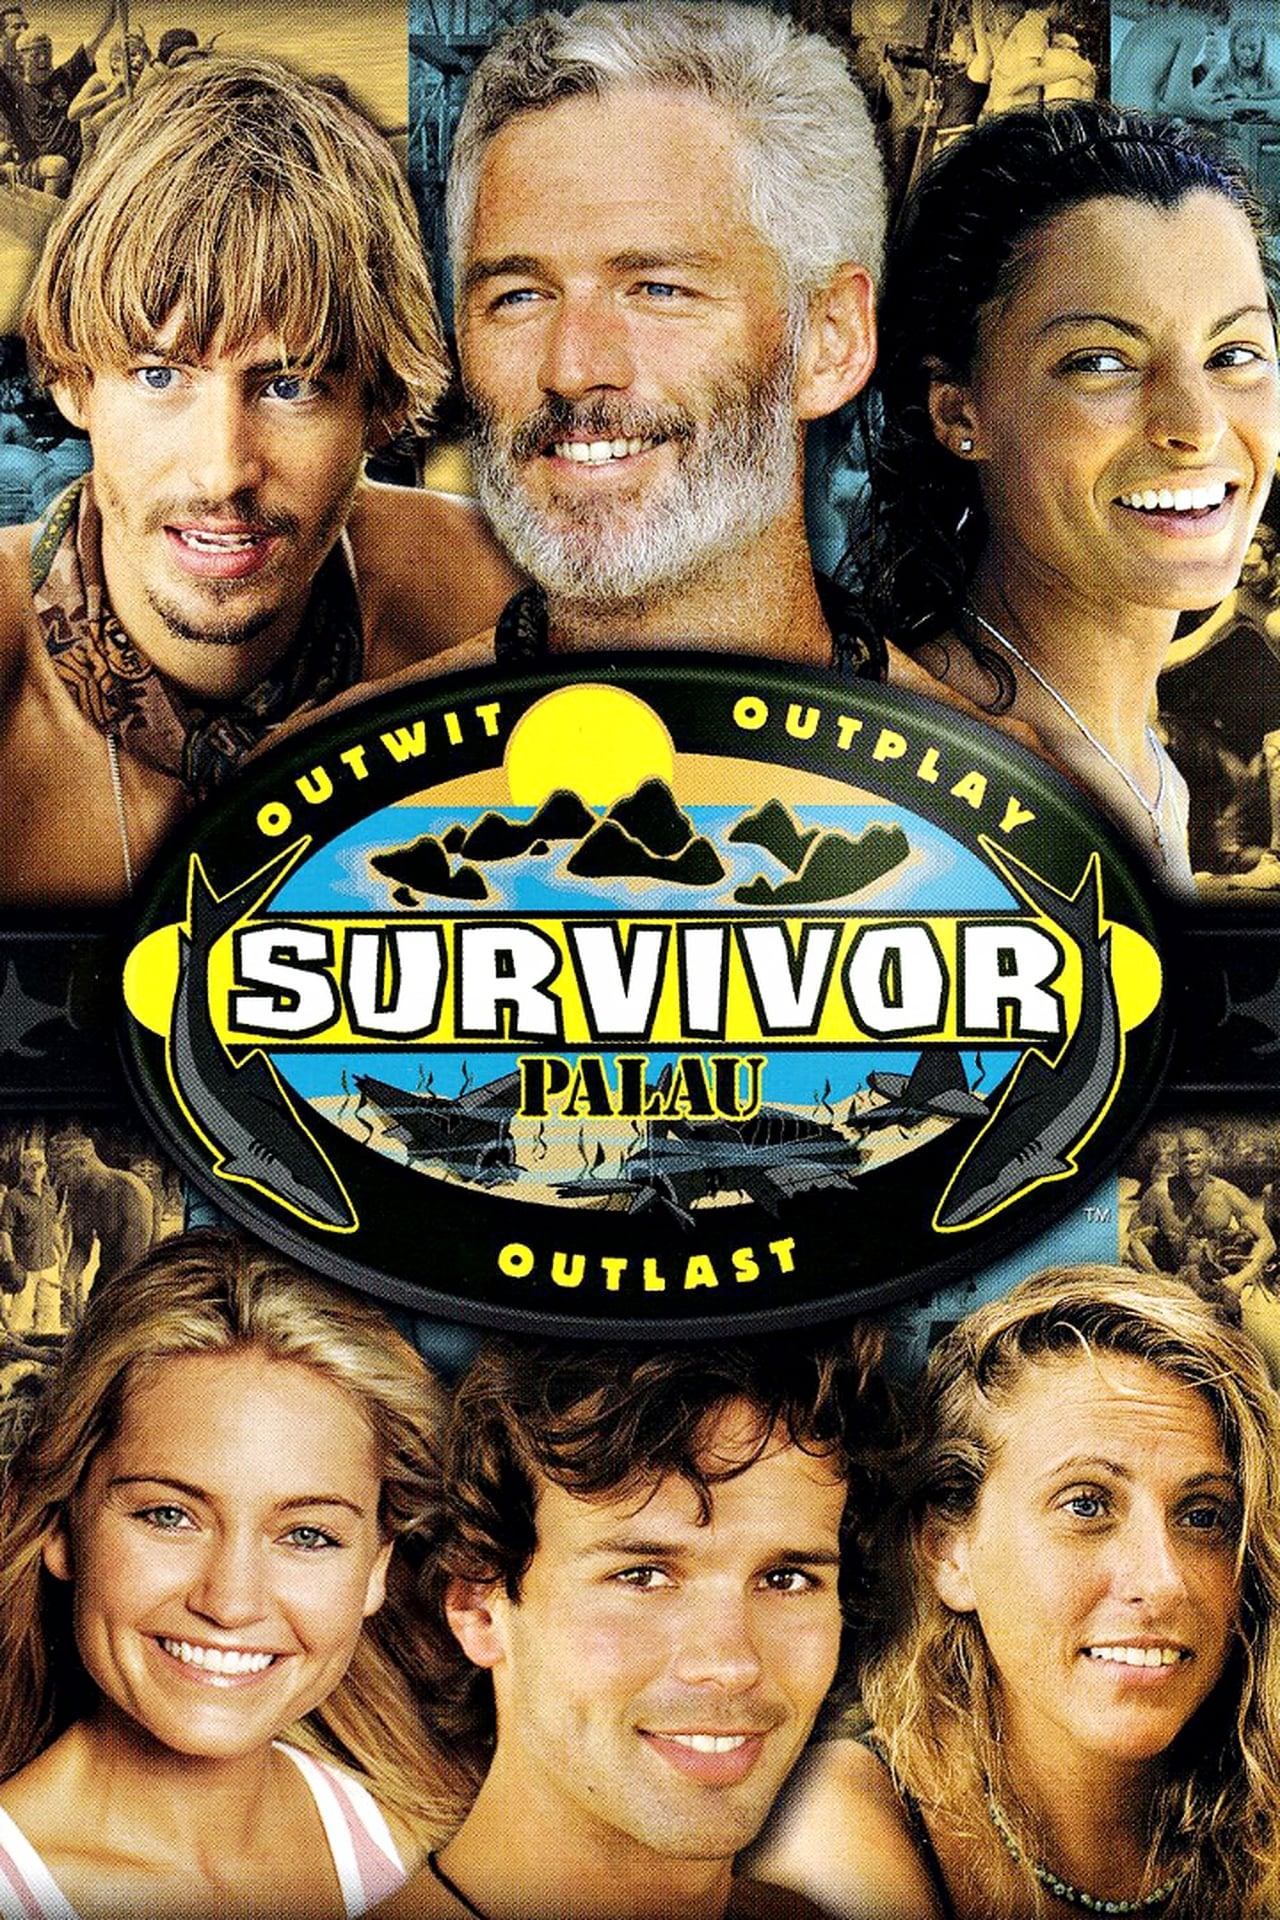 Survivor Season 10 (2005) putlockers cafe